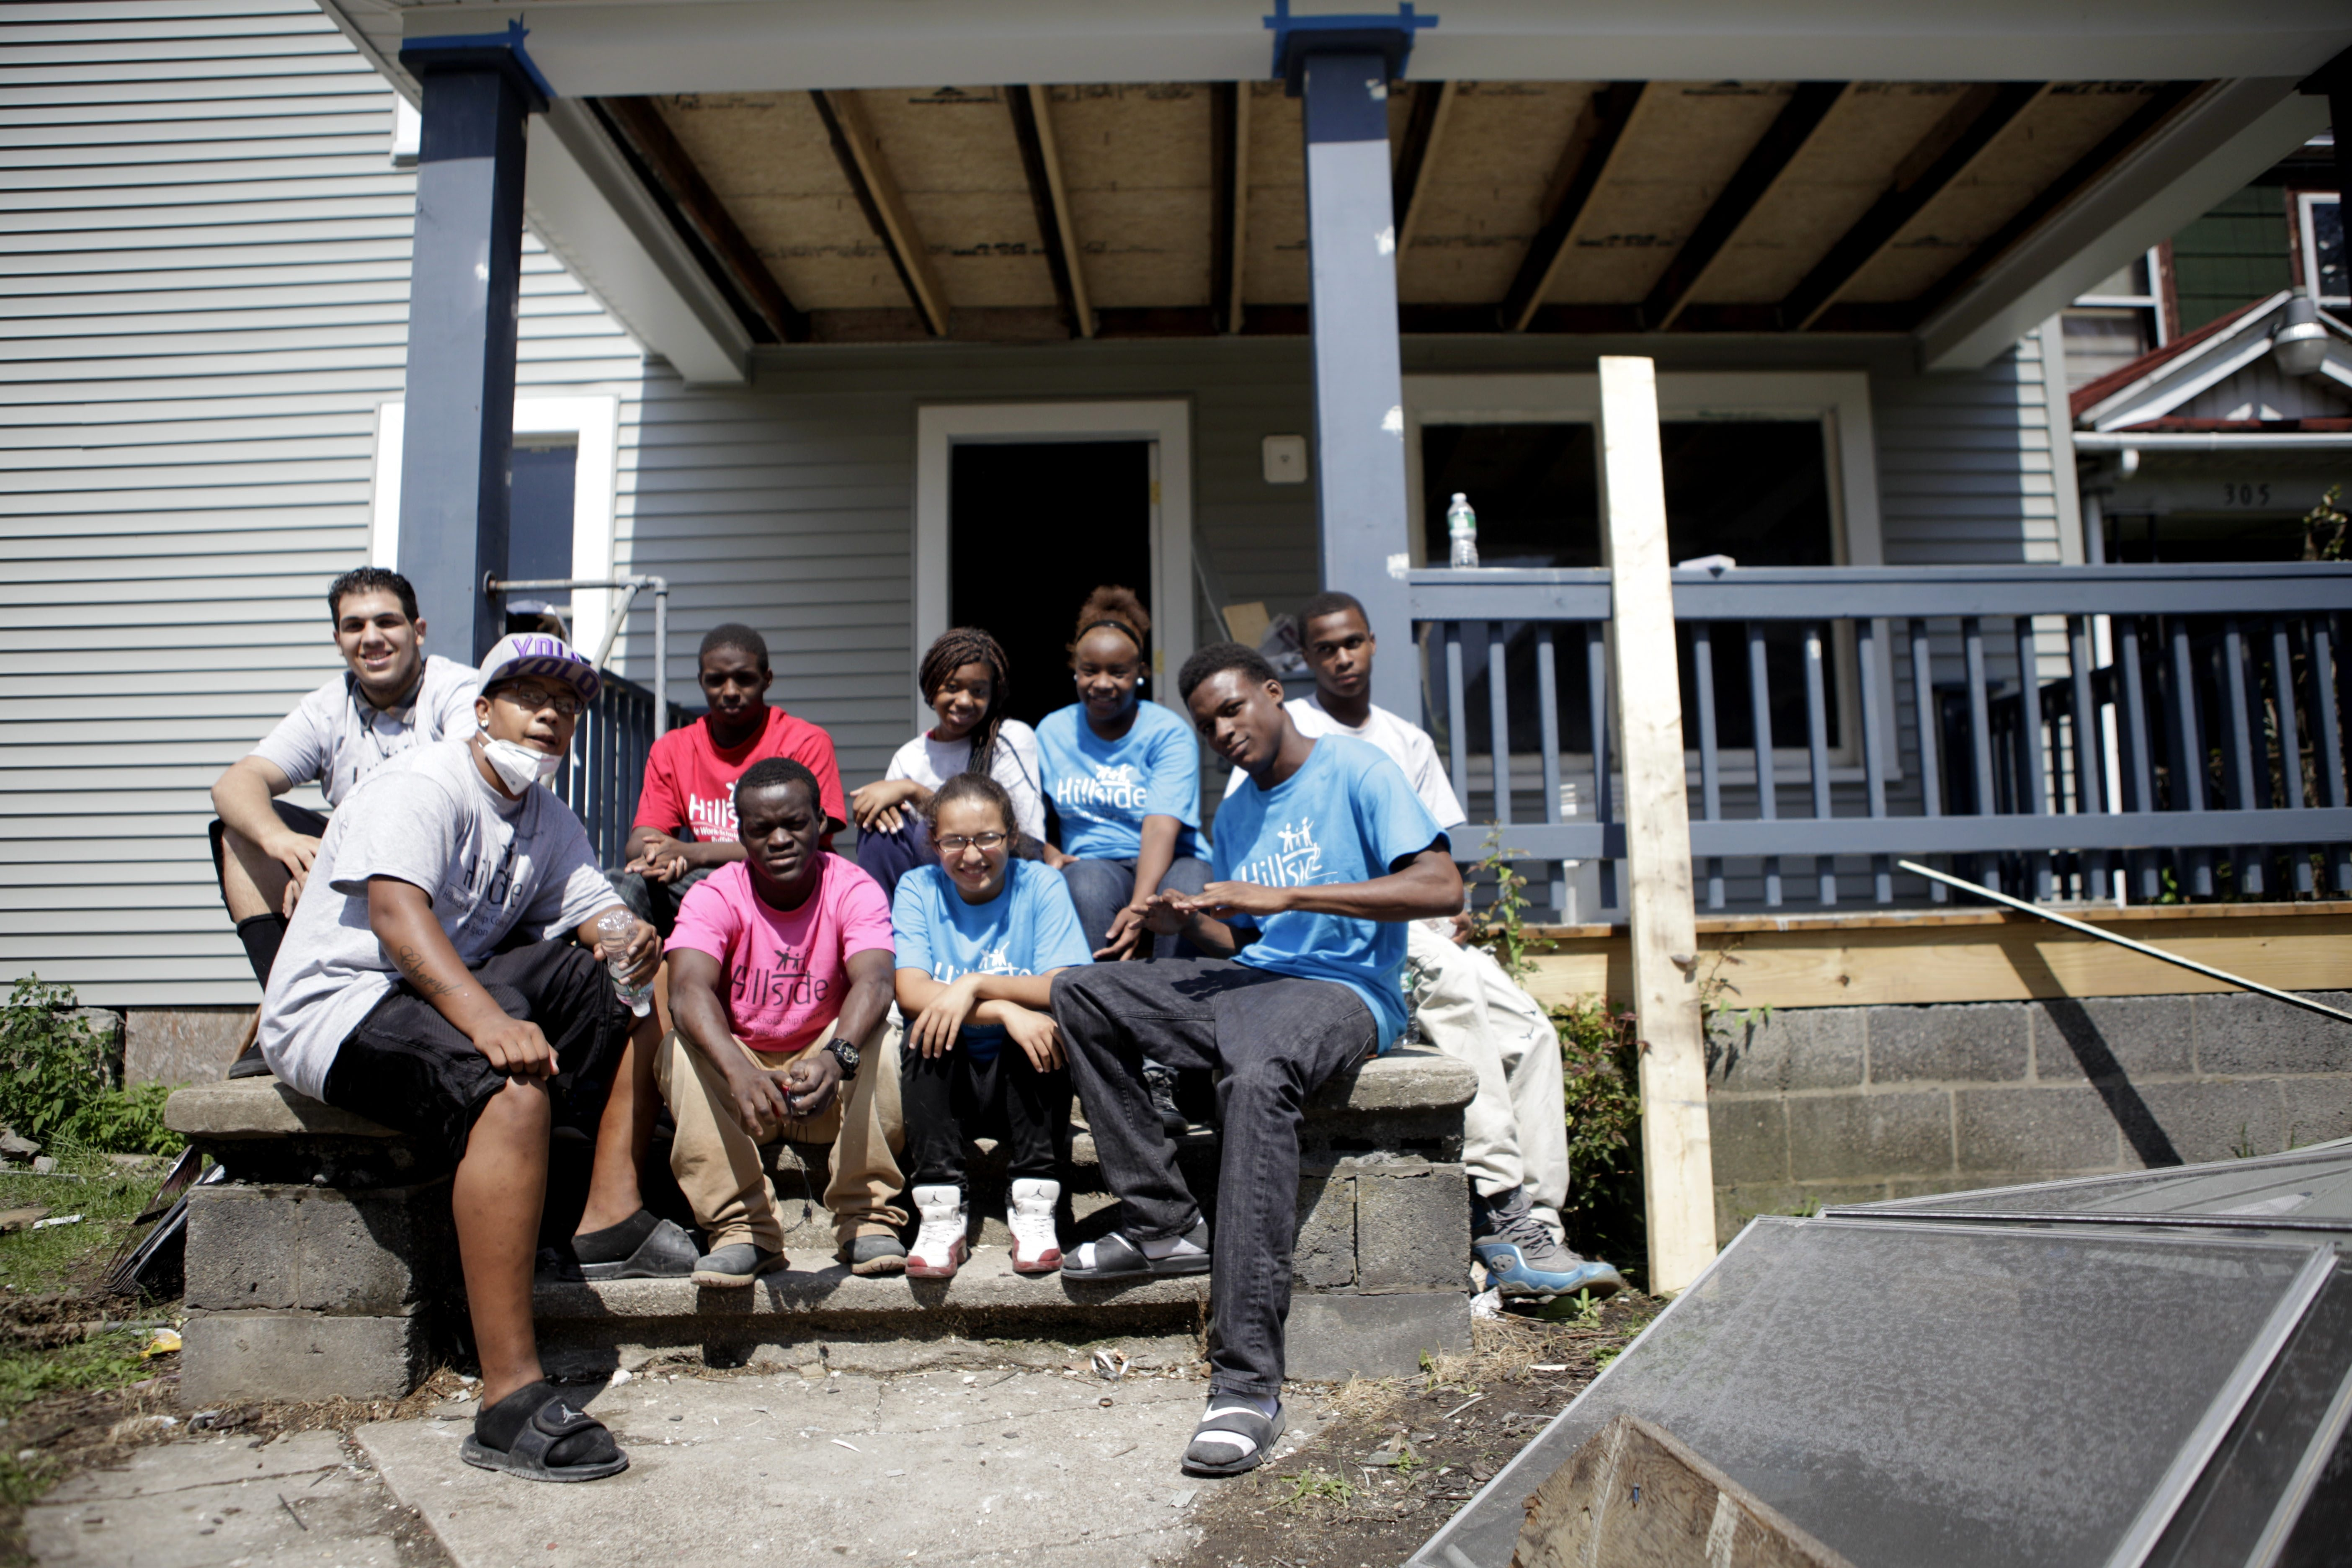 Students in the Hillside Connection program at Bennett High School helped renovate a house on 14th Street last summer. (Buffalo News file photo)